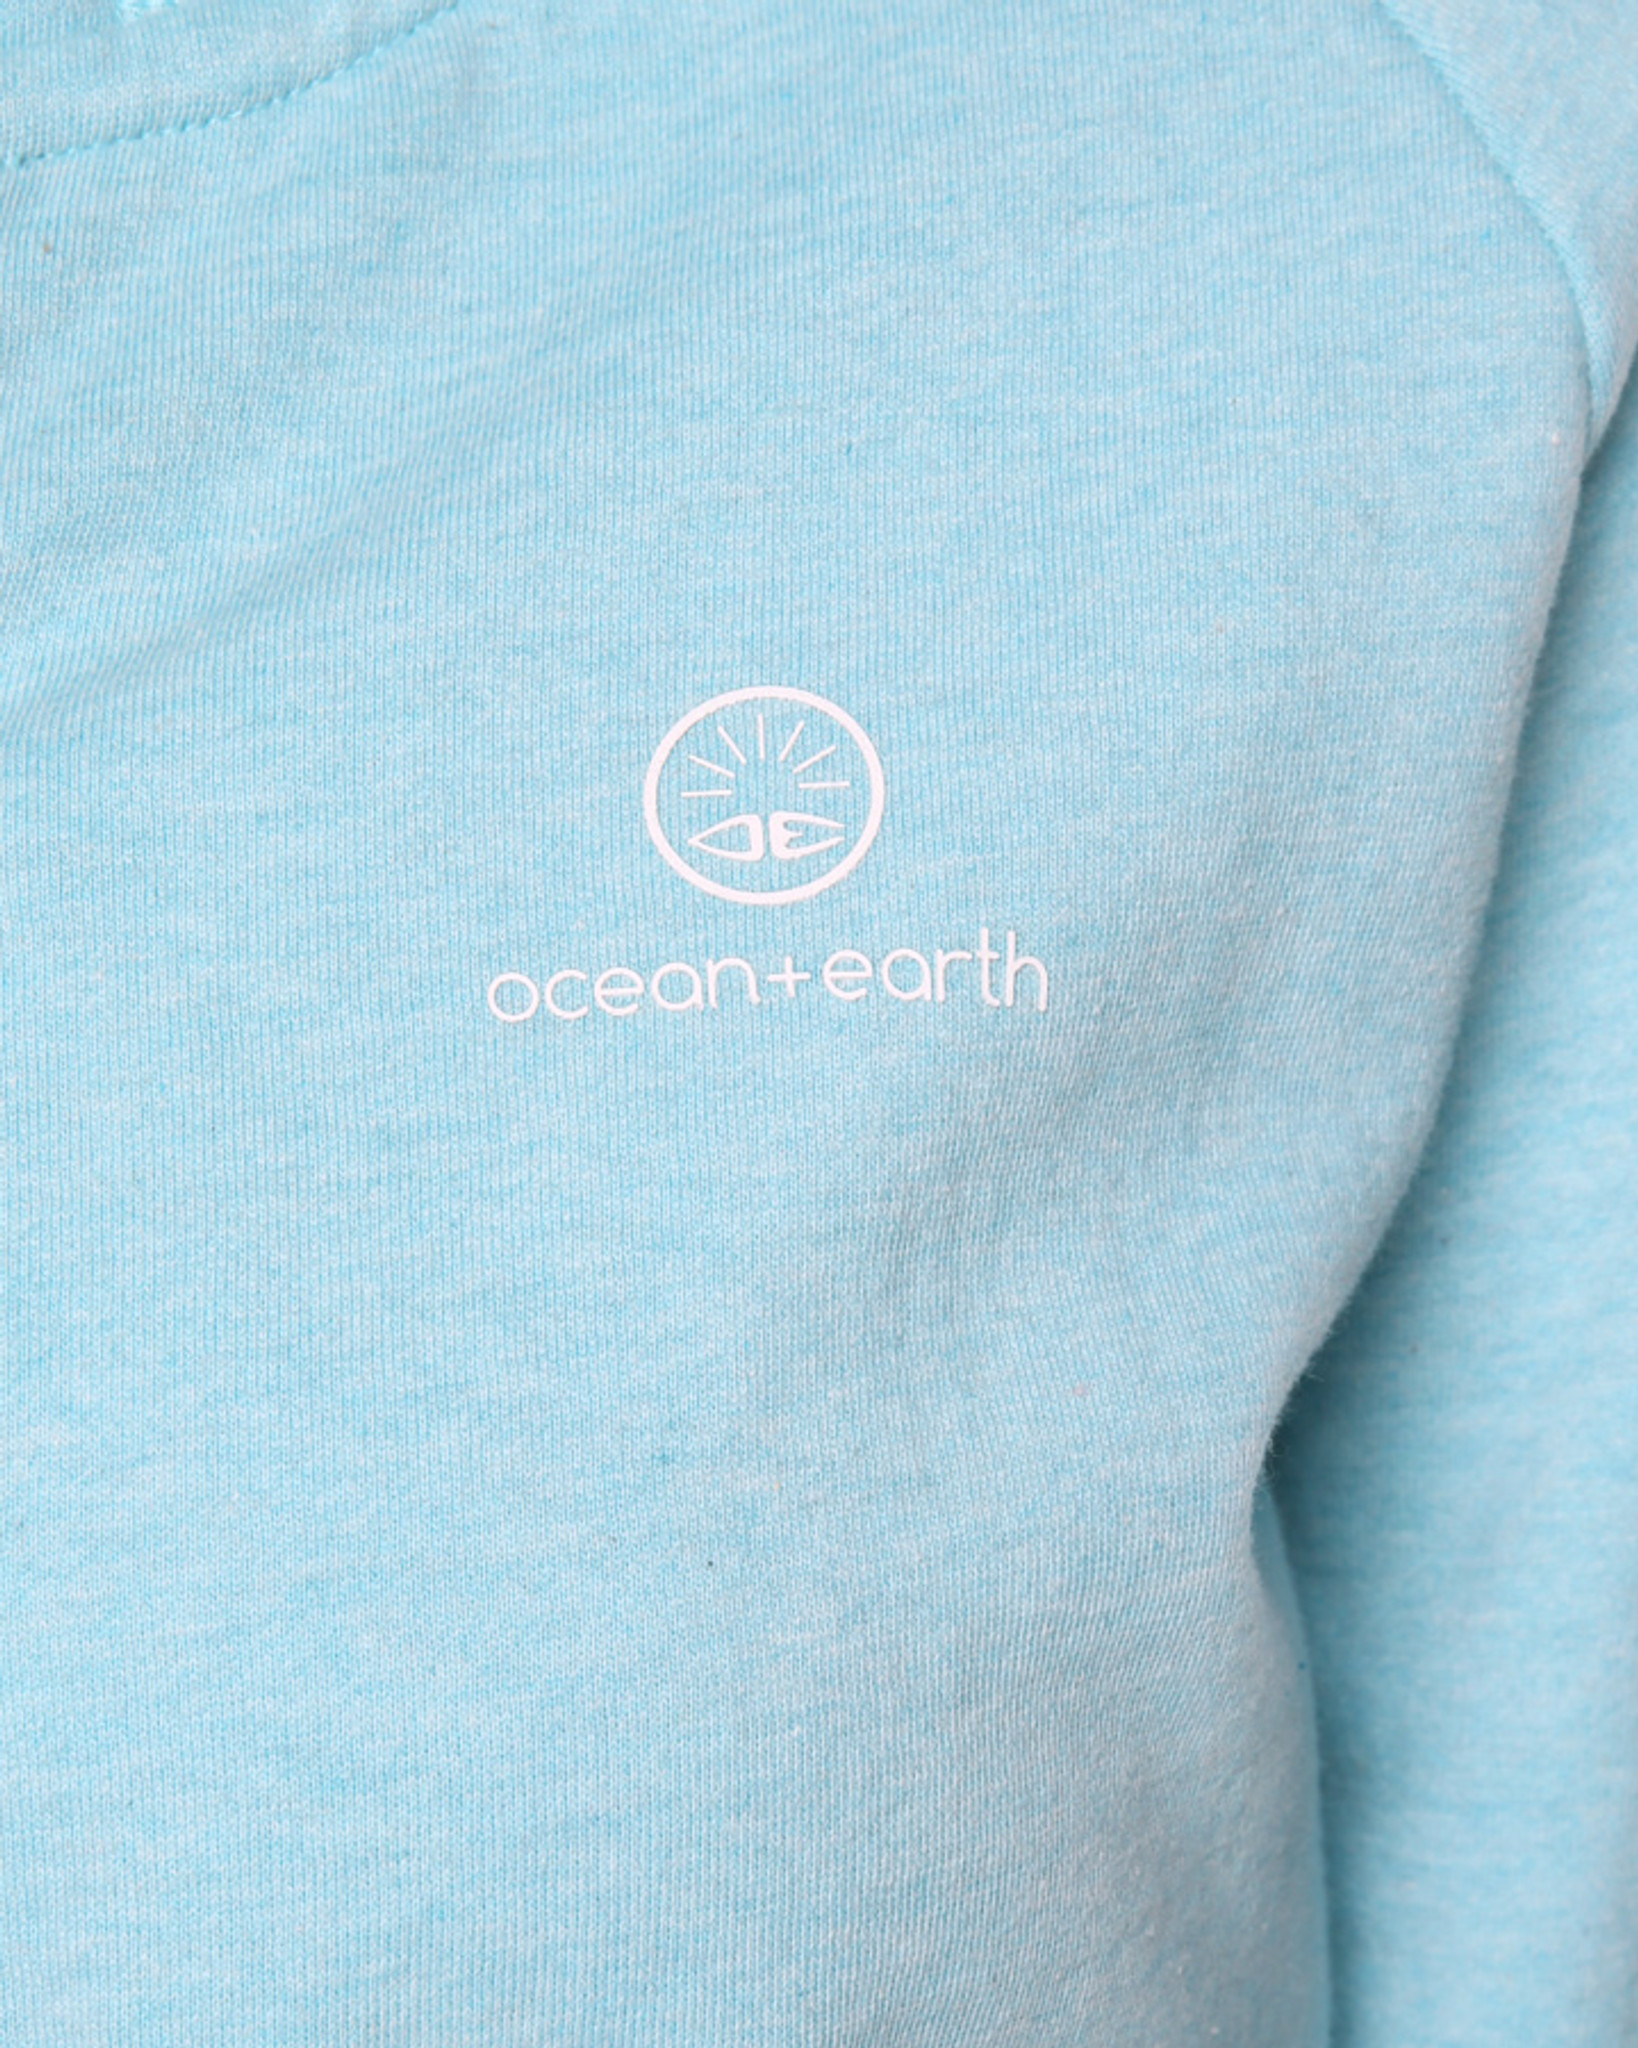 958e7aab Ladies Cali Zip Hoodie - Aqua Marle - Ocean & Earth